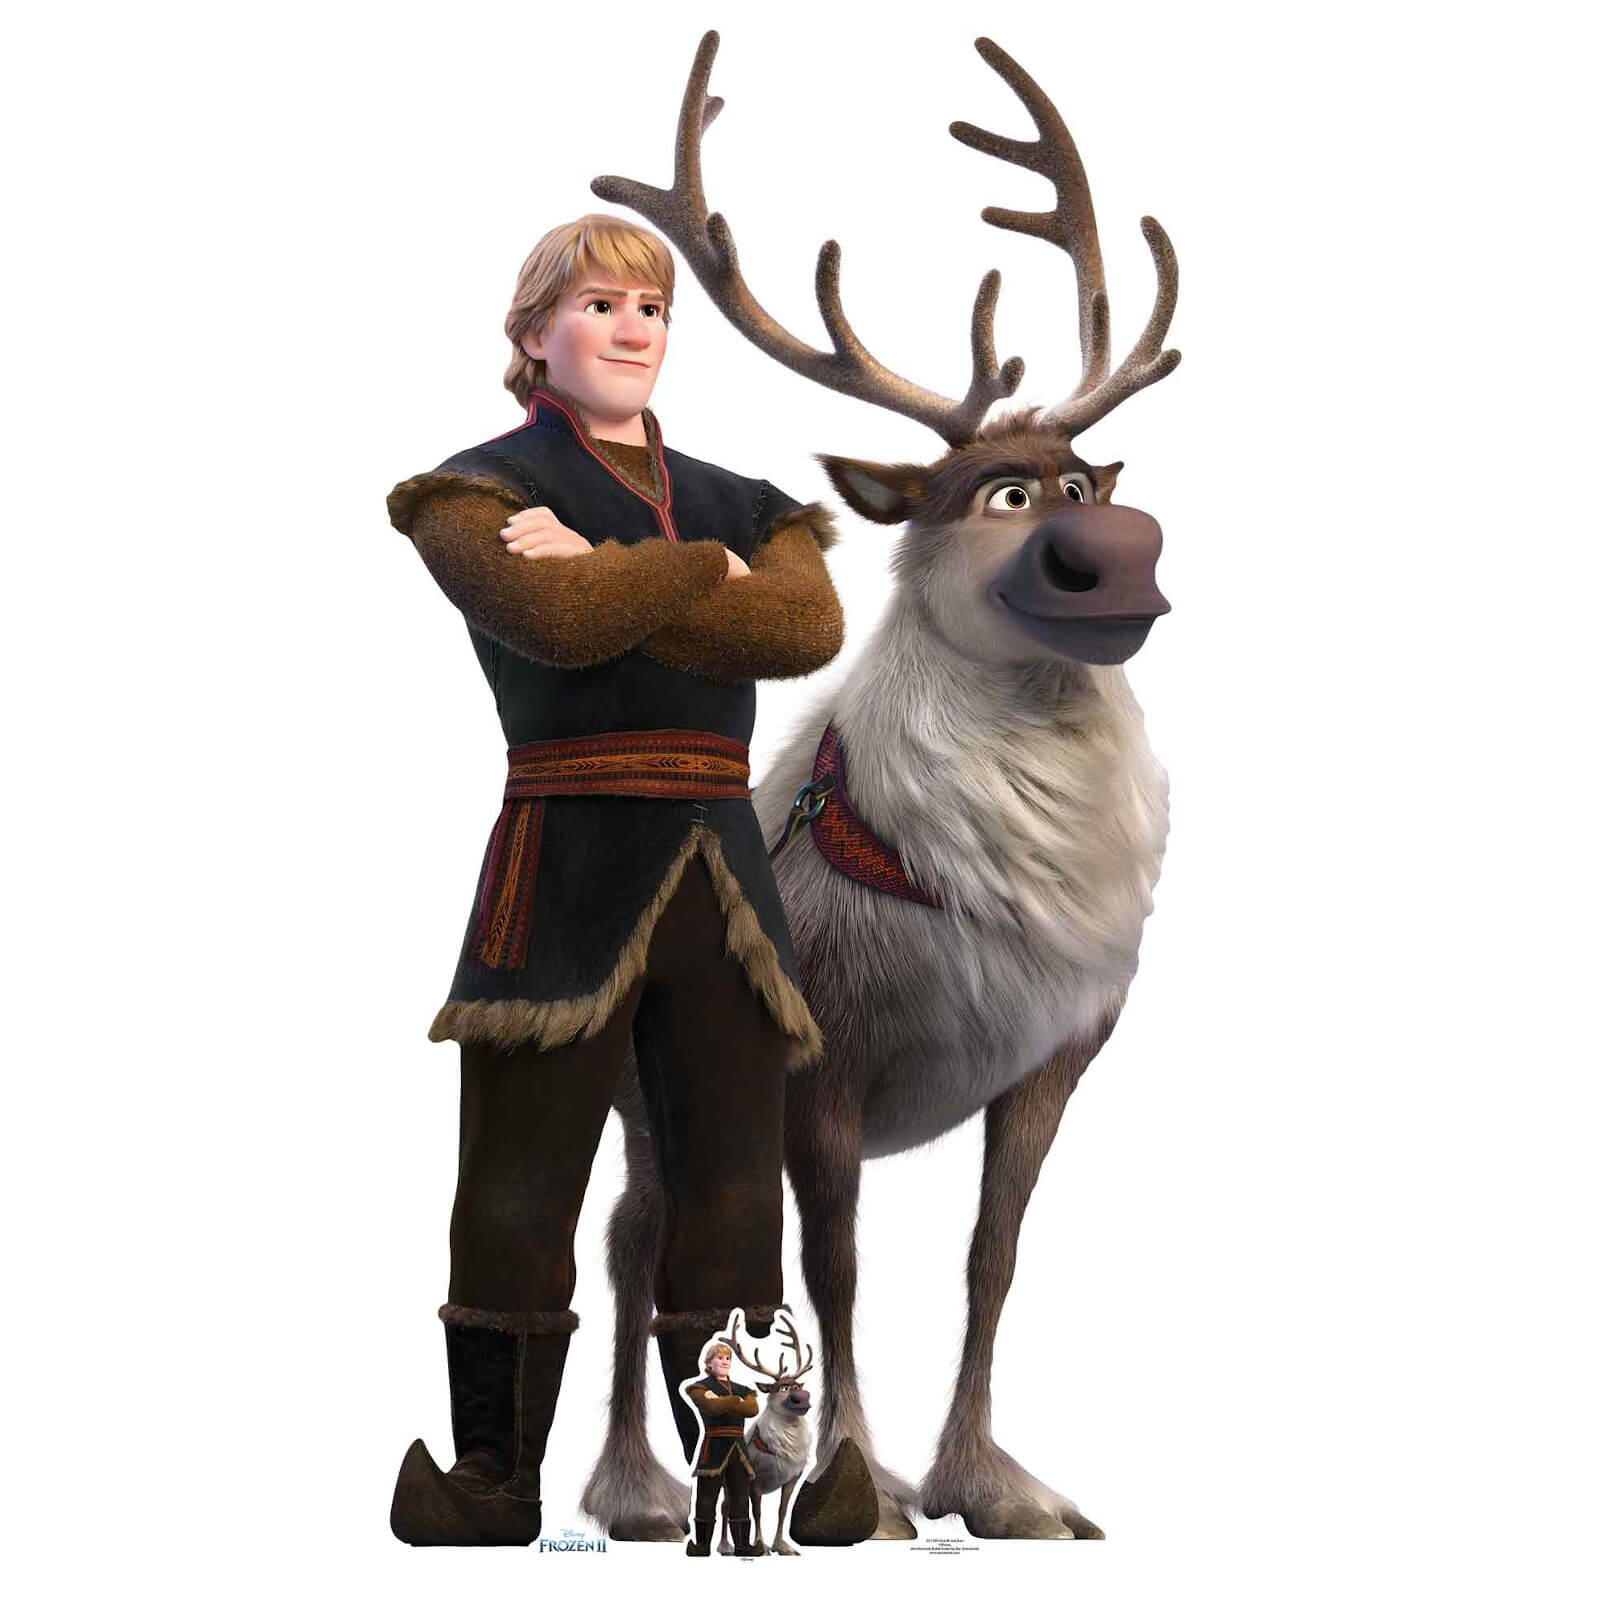 Image of Disney Frozen 2 Kristoff & Sven Oversized Carboard Cut Out